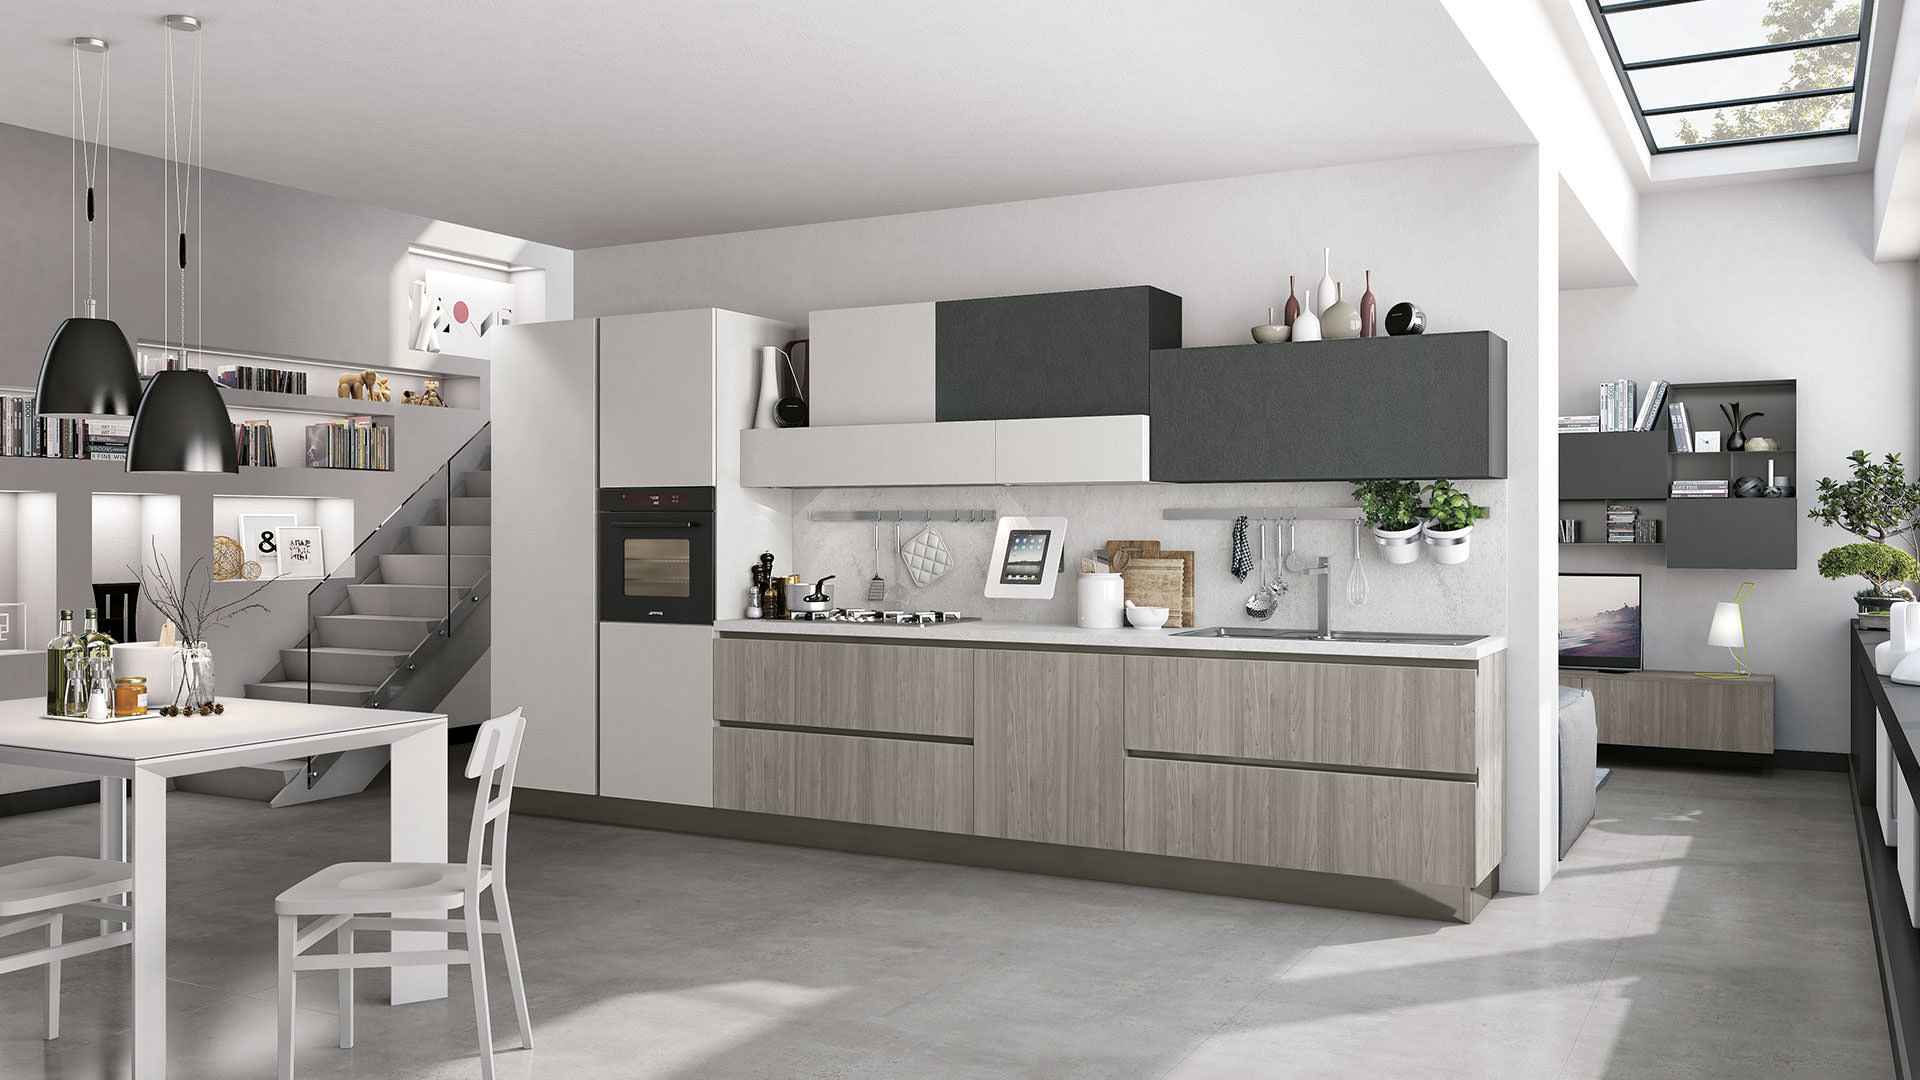 Cucine Colori Chiari - Home Design E Interior Ideas - Refoias.net